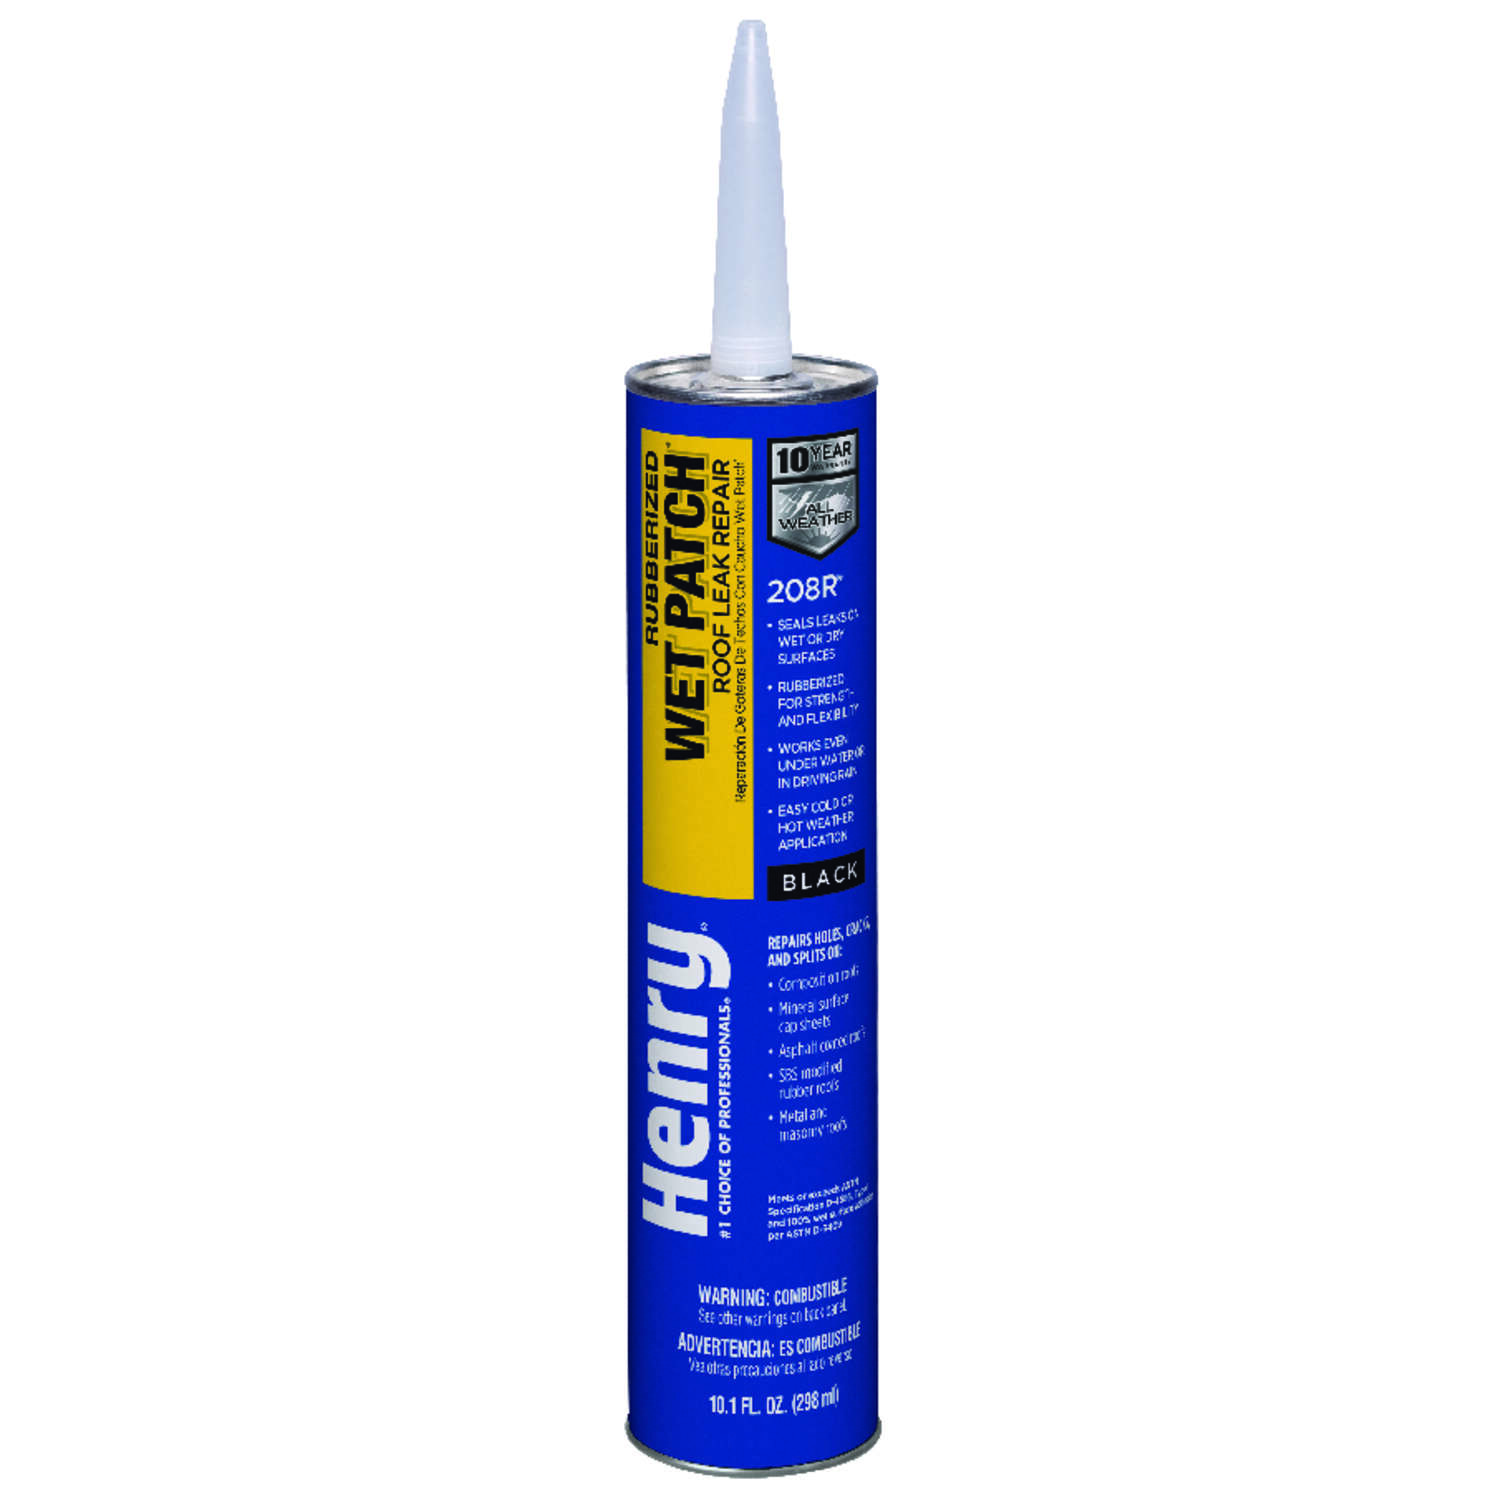 Henry Smooth Black Rubber Based Wet Patch Roof Cement 10 1